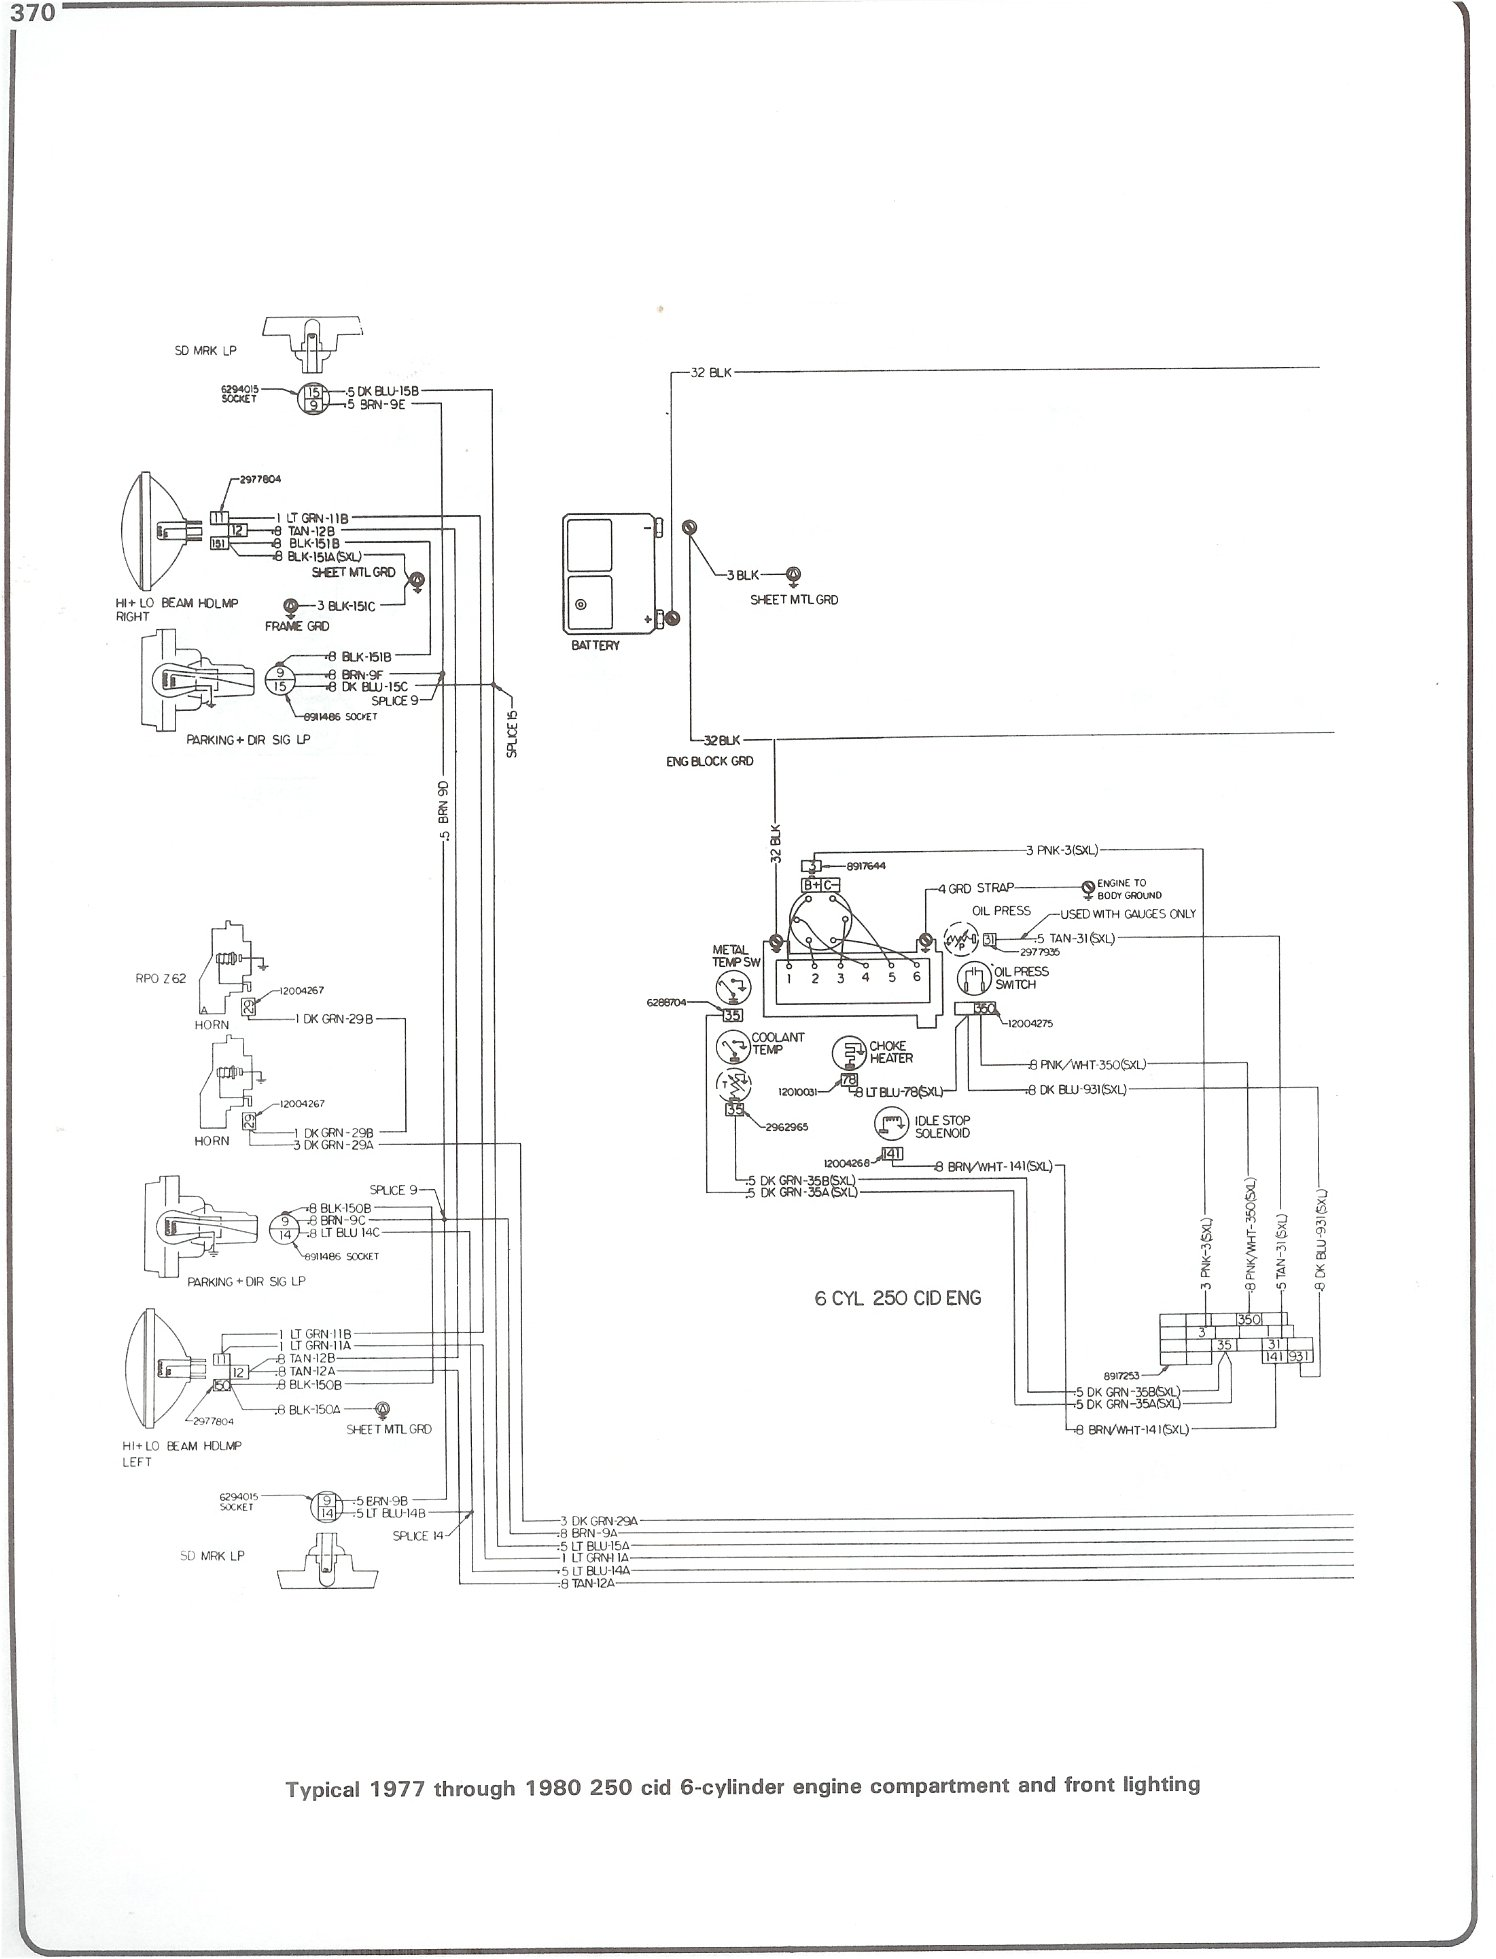 wiring diagram for 78 chevy blazer data wiring diagram today rh 4 20 7 physiovital besserleben de